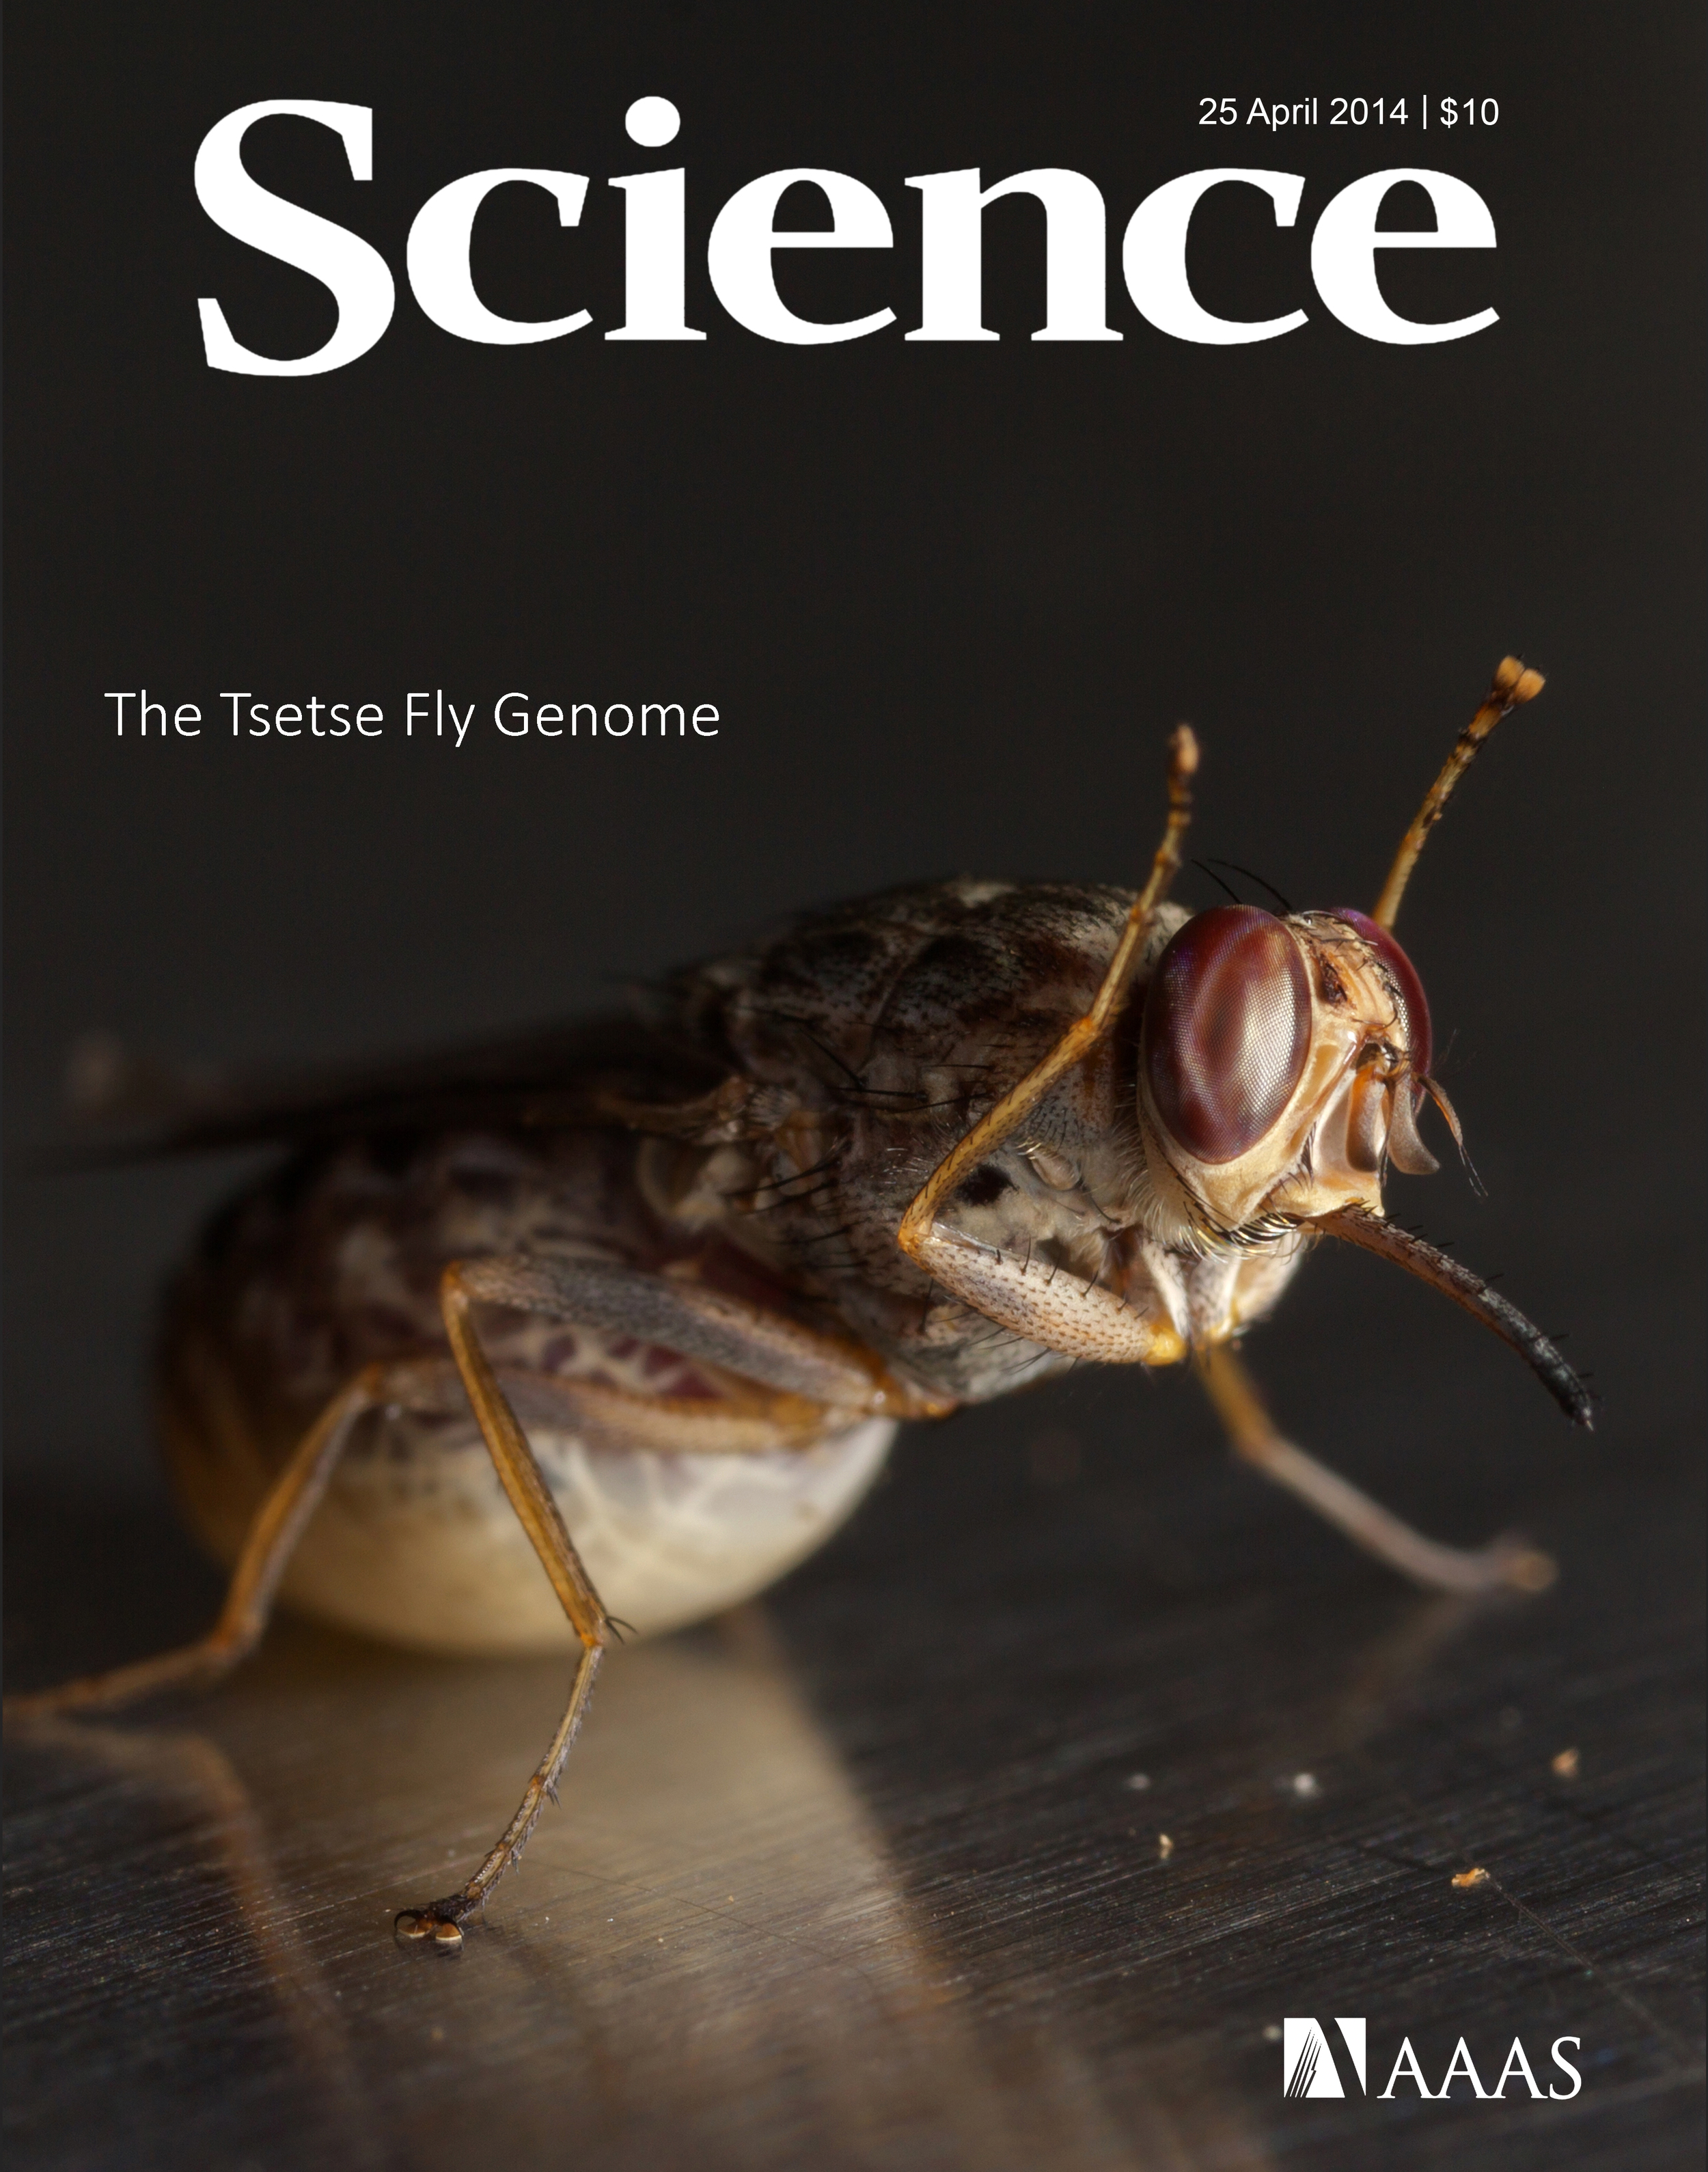 Science Cover for the Tsetse Fly Genome Paper